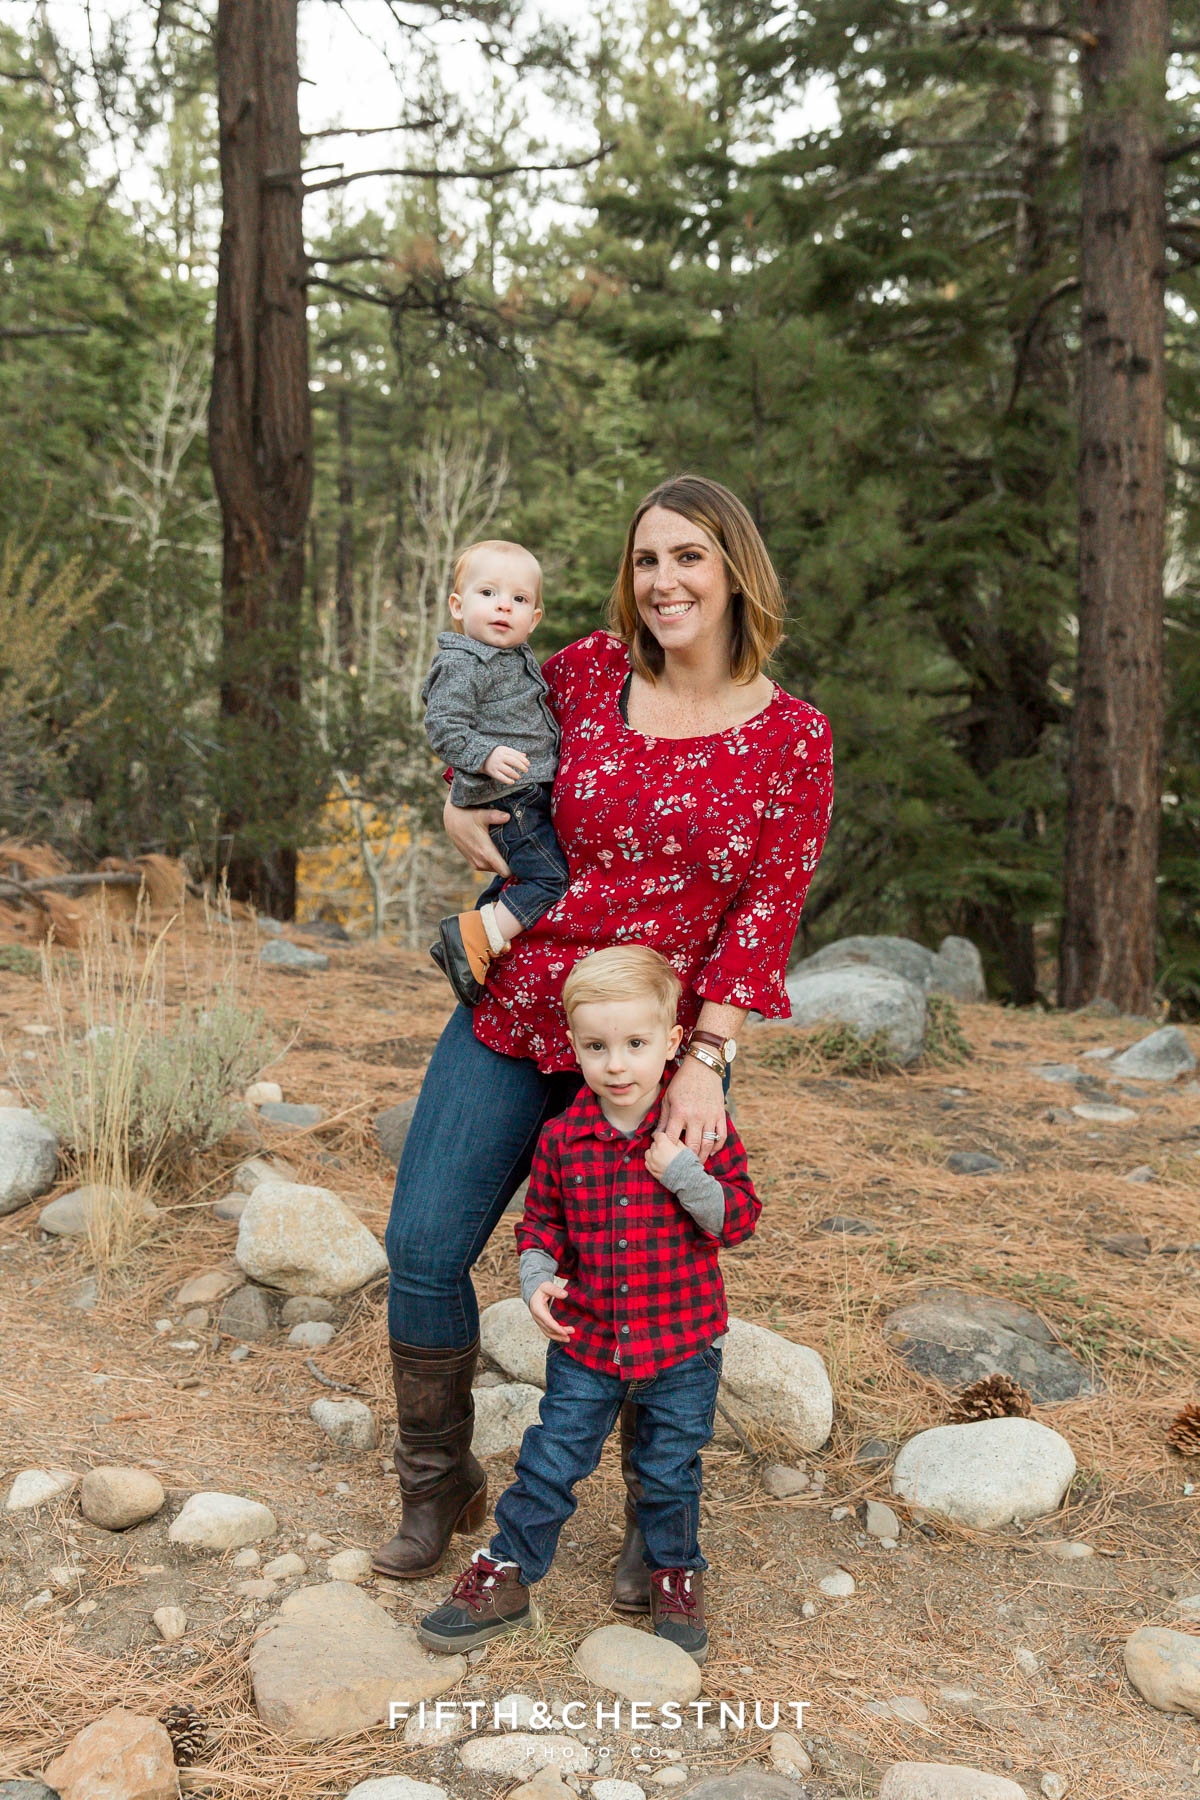 portrait of mother and sons with pine trees and rocks in the background